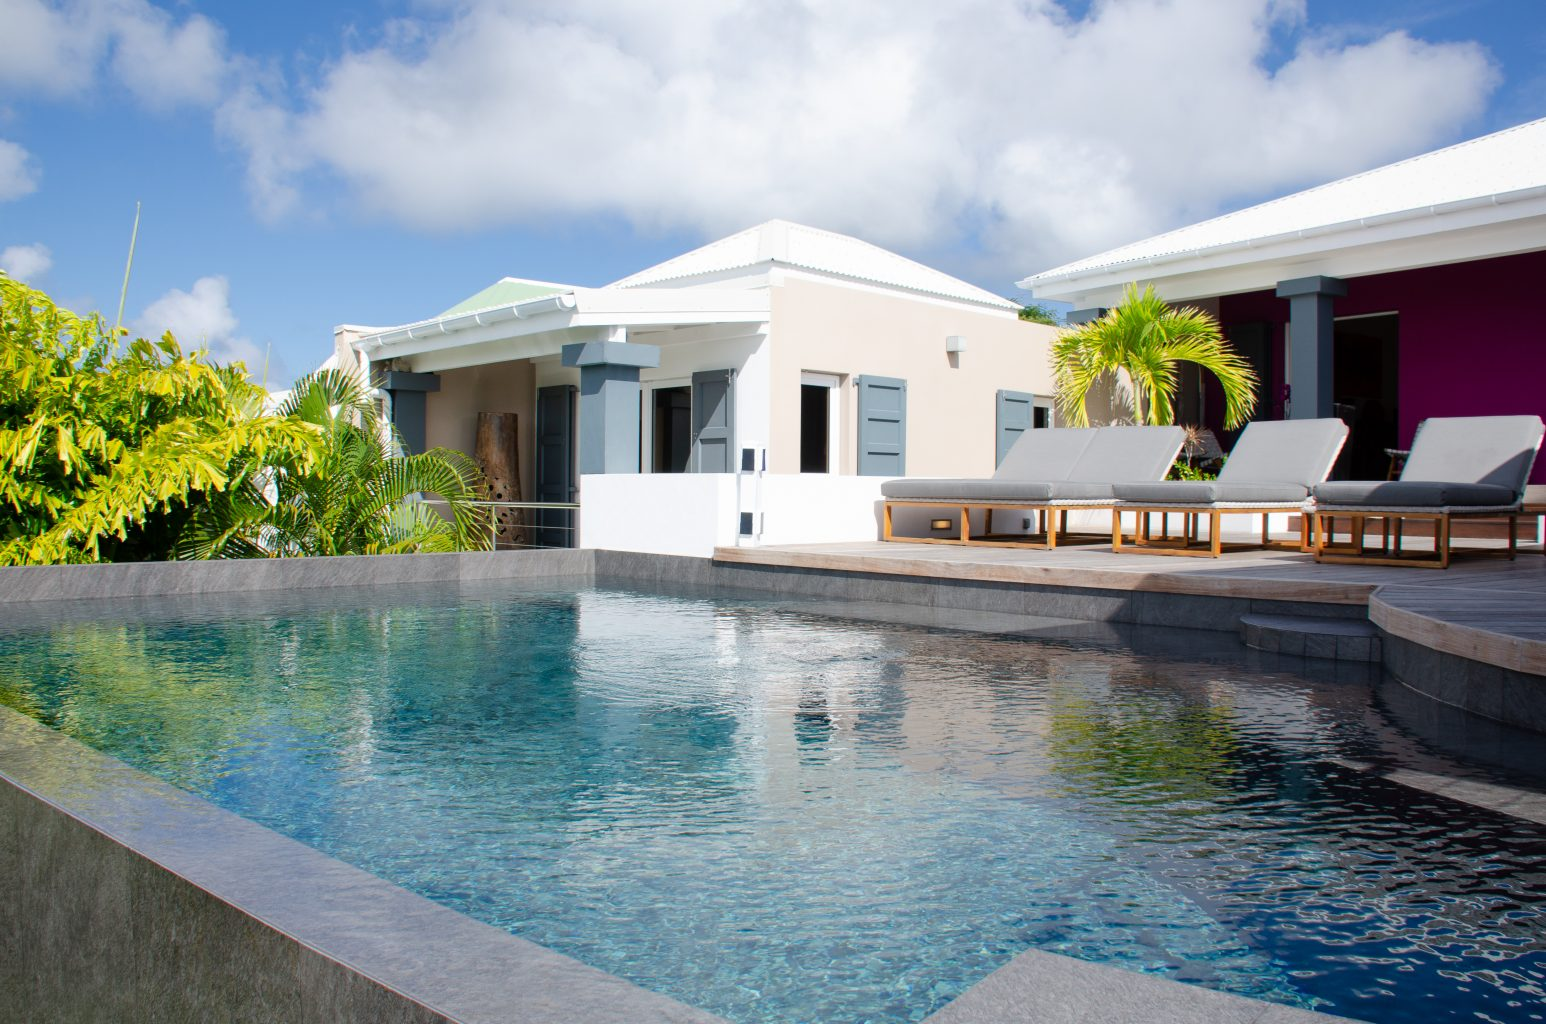 Villa Vague Bleue - Shopping Close by Villa for Rent with Large Pool - Outside View